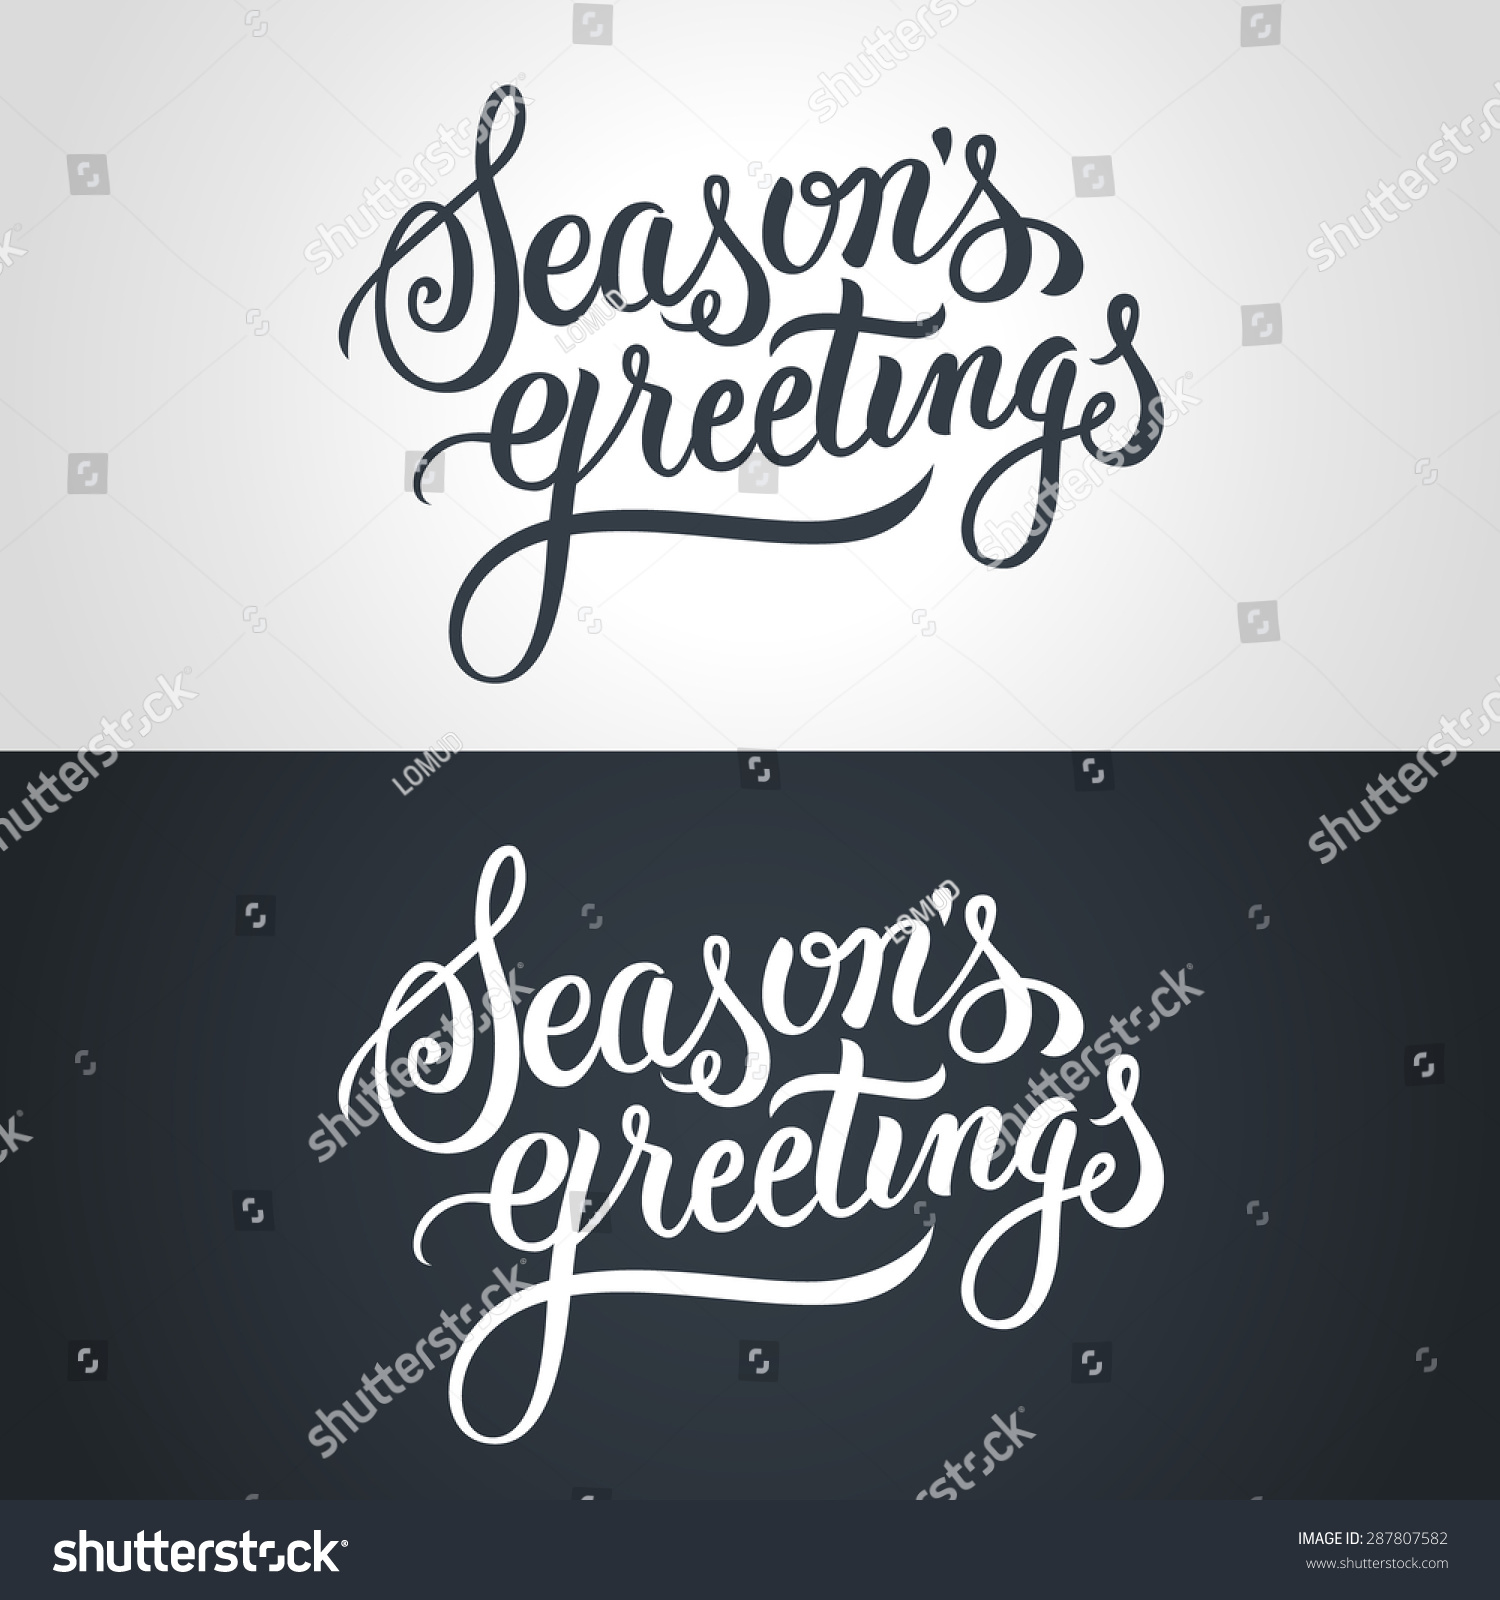 Seasons greetings hand lettering handmade vector stock vector seasons greetings hand lettering handmade vector calligraphy m4hsunfo